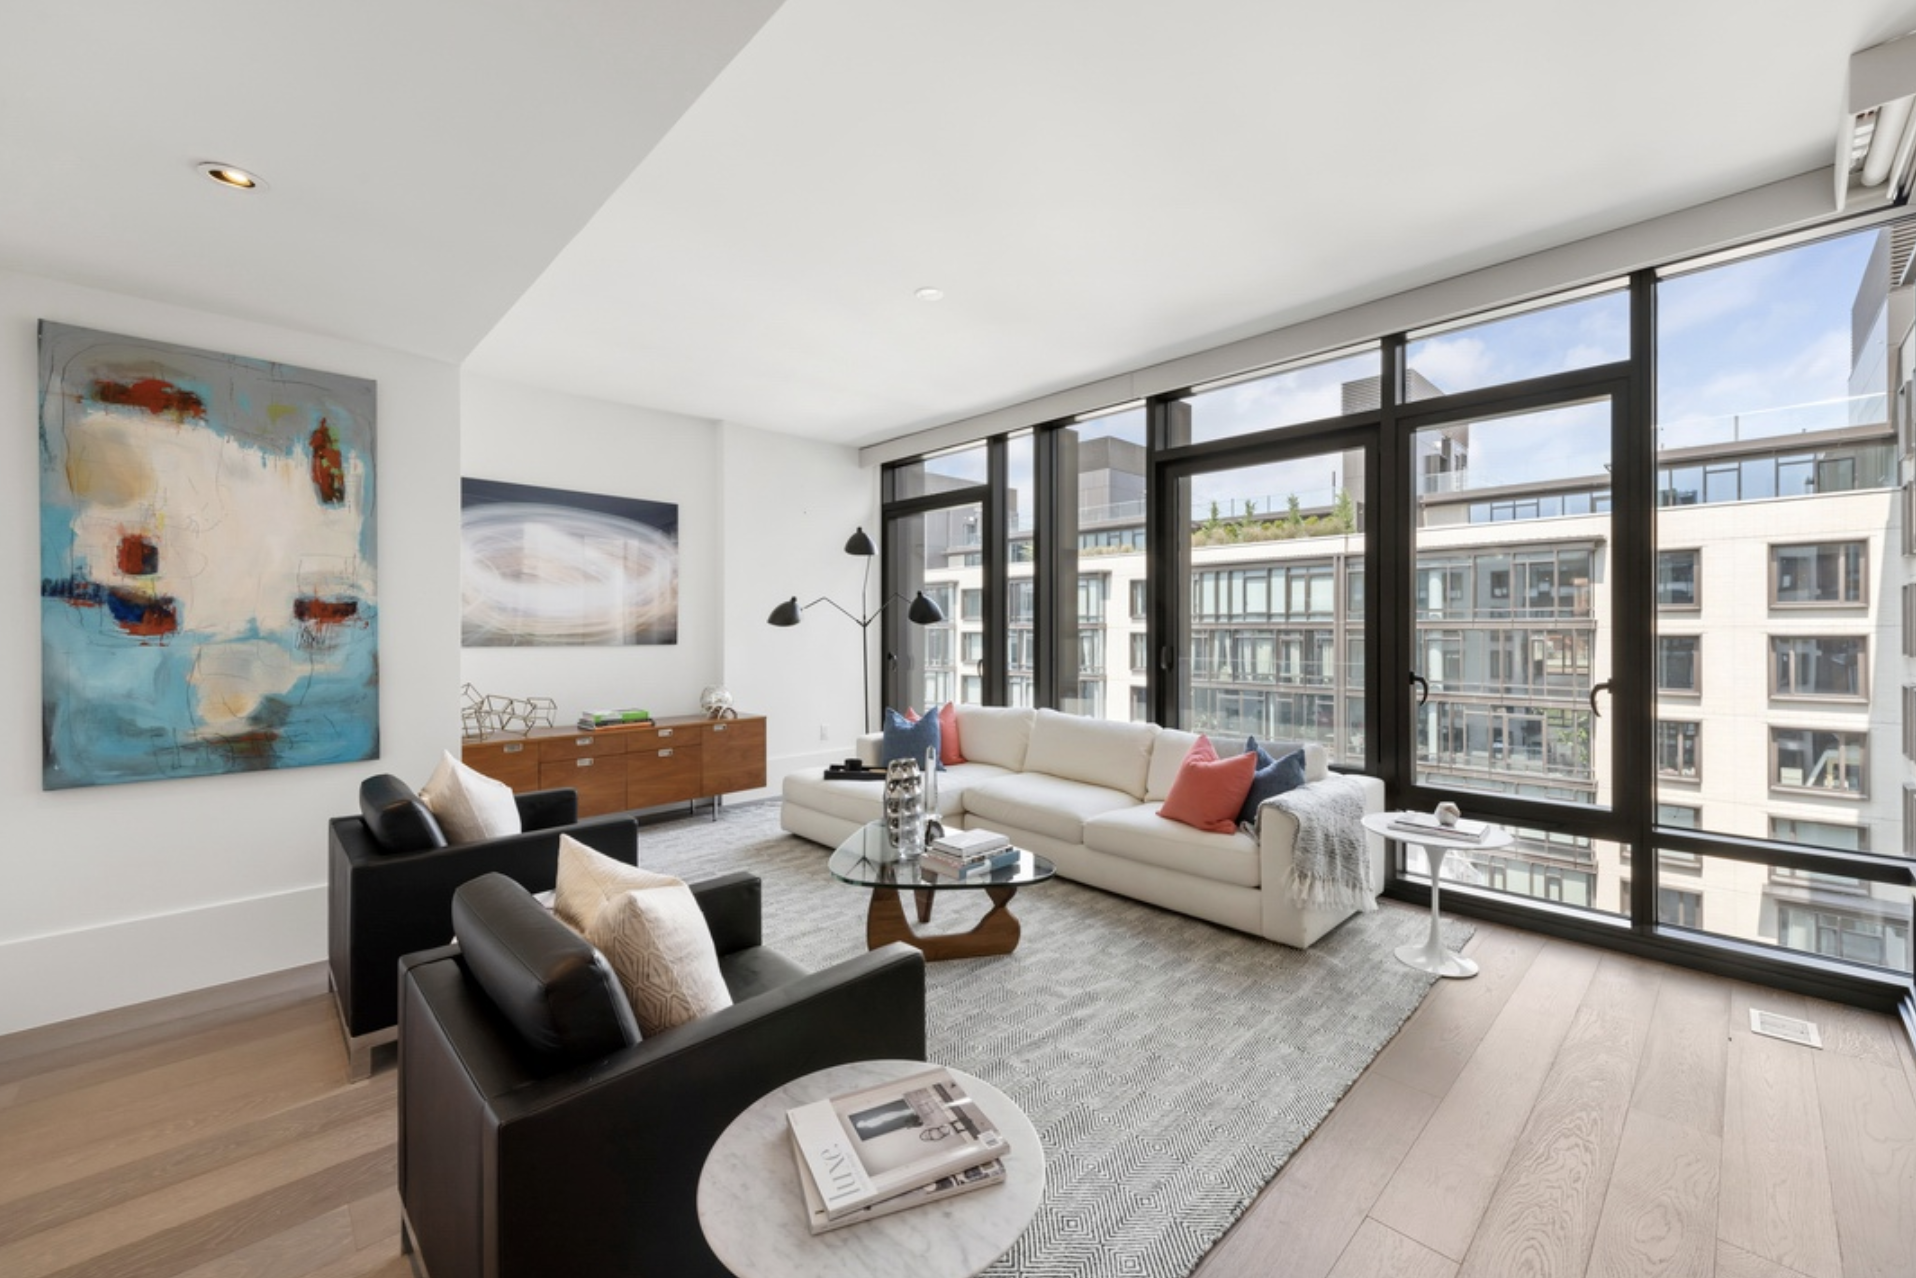 429 KENT AVENUE, D715 - $2,500,000 // 4 Beds // 4.5 Baths // 2,557 SQFTA sterling duplex condo boasting high-end upgrades and a thoughtful floorplan, this massive home is a study in contemporary Brooklyn luxury. Features of this 2,557 sq. ft. apartment include elegant 10-inch wide-plank flooring, huge casements windows overlooking a tranquil courtyard, a 5-zone HVAC system, motorized Lutron blackout blinds, a supersized LG washer/dryer, and a state-of-the-art Nest camera and security system.